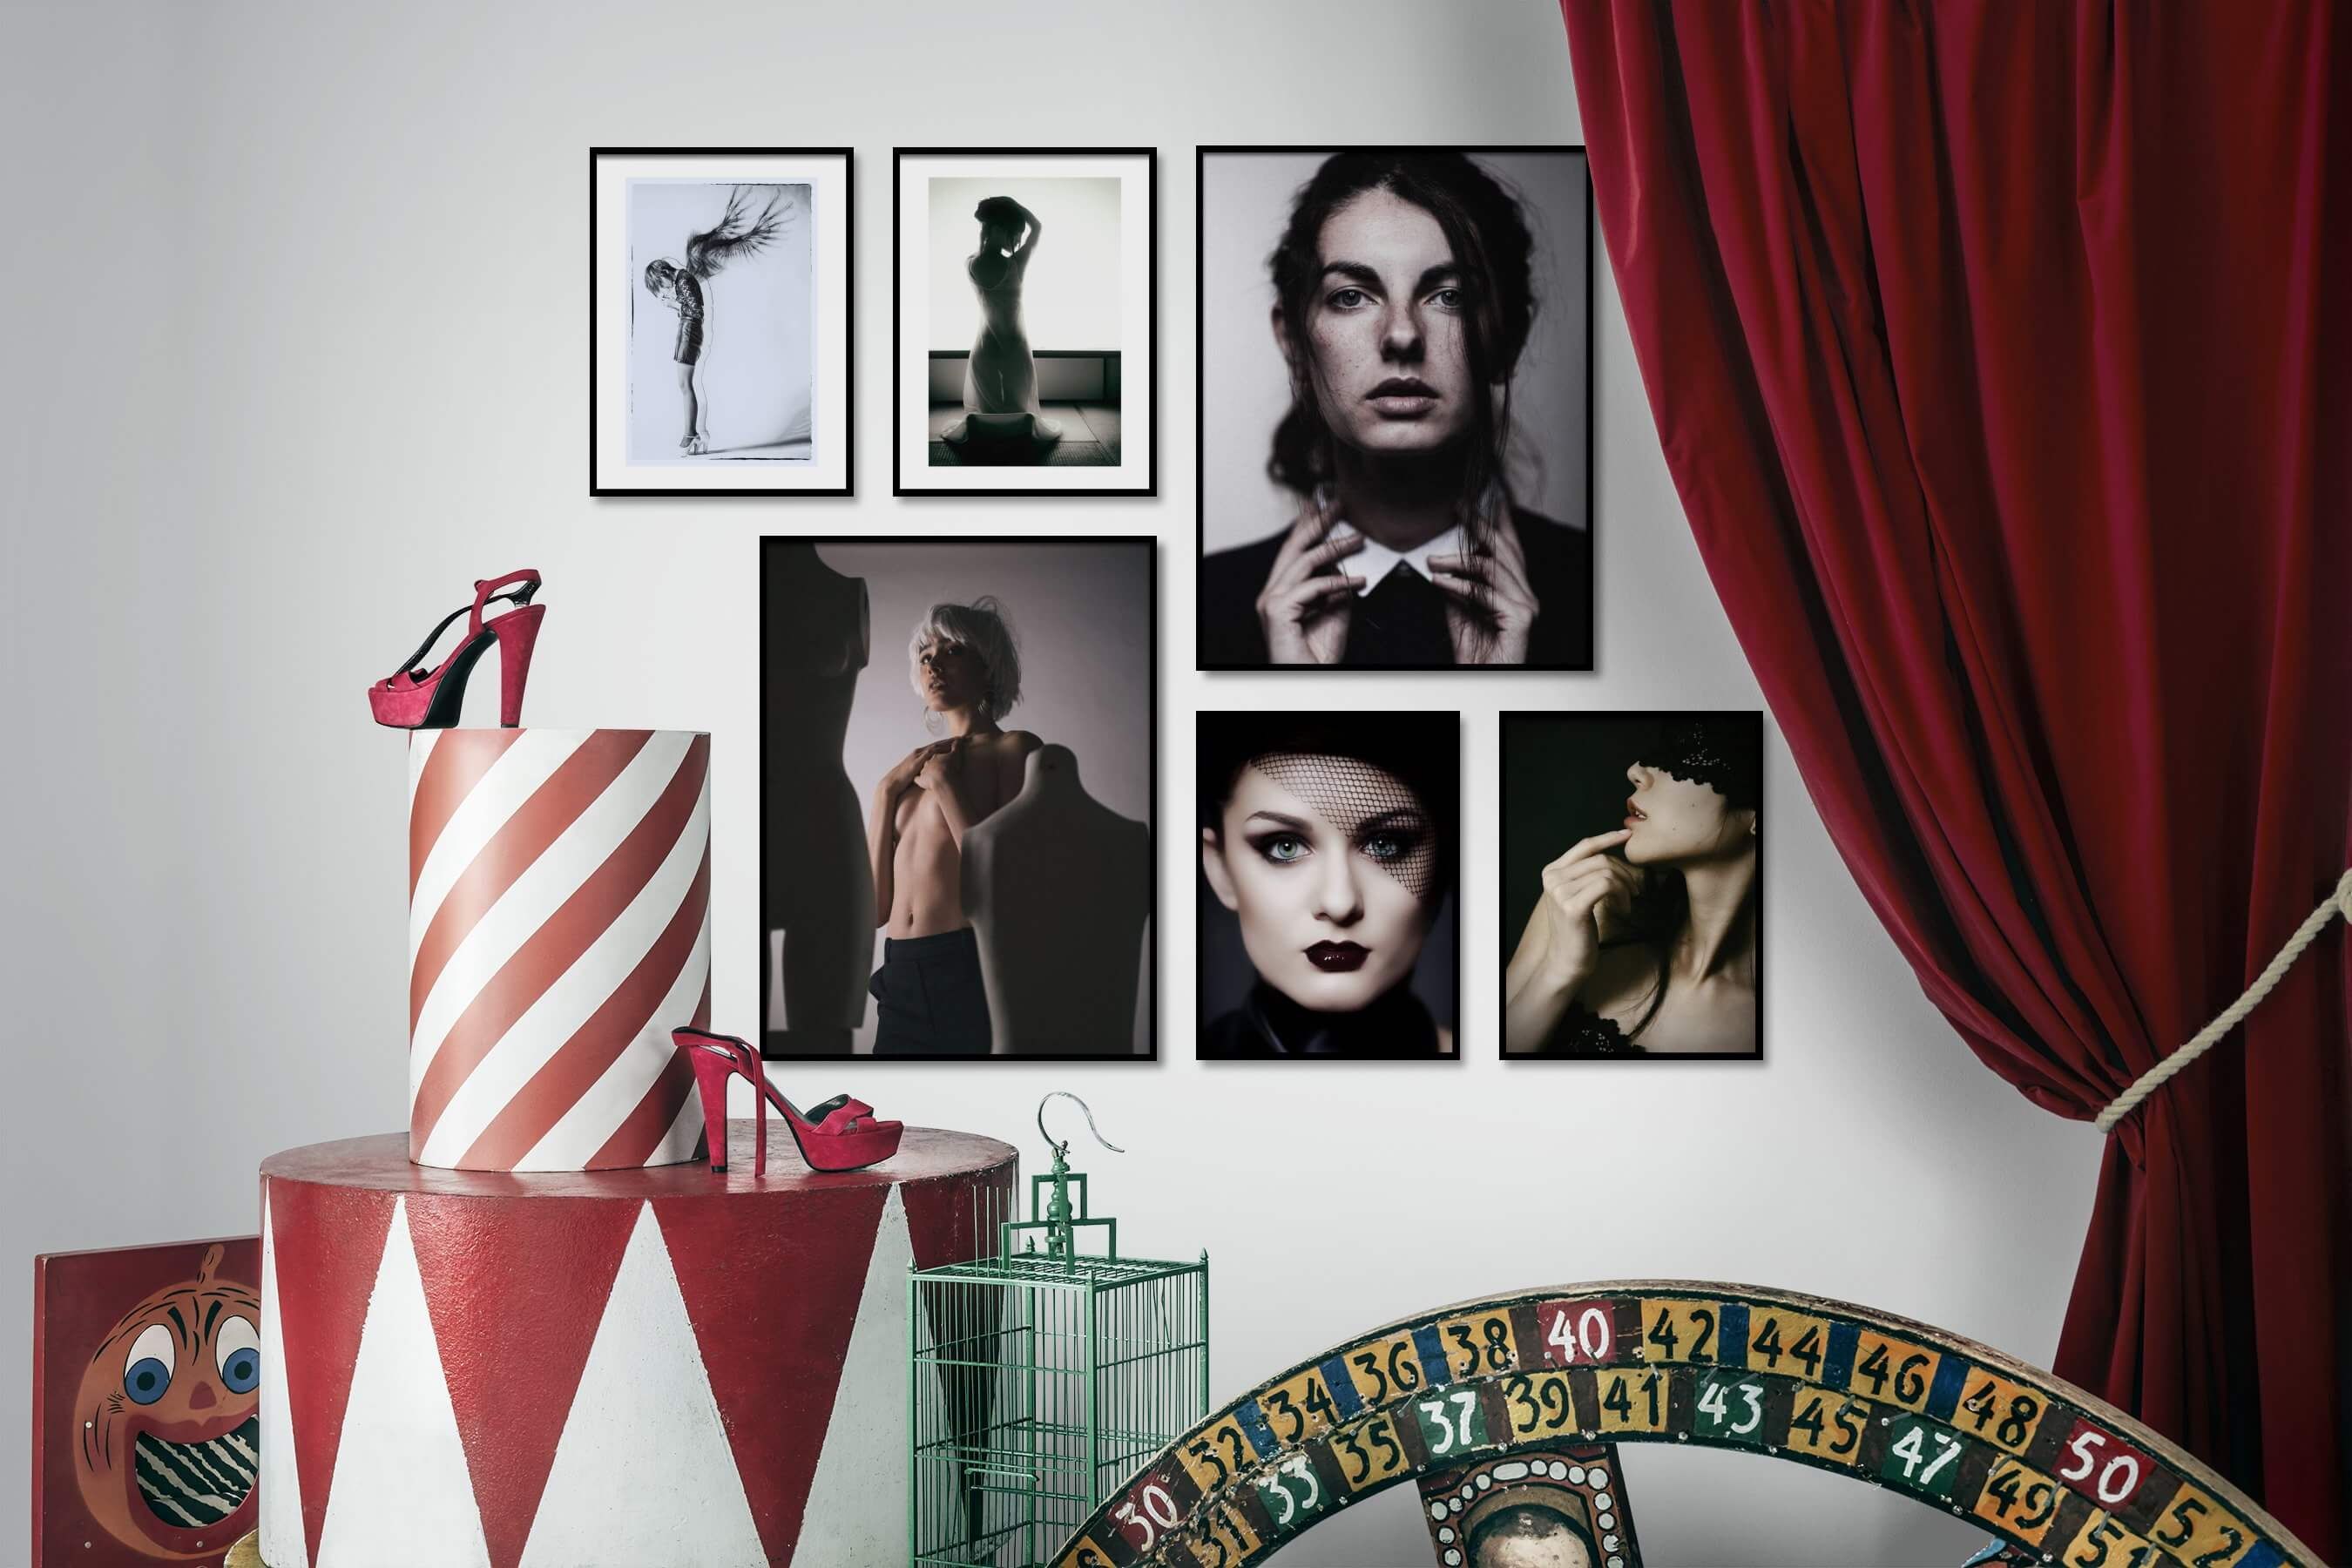 Gallery wall idea with six framed pictures arranged on a wall depicting Fashion & Beauty and Black & White